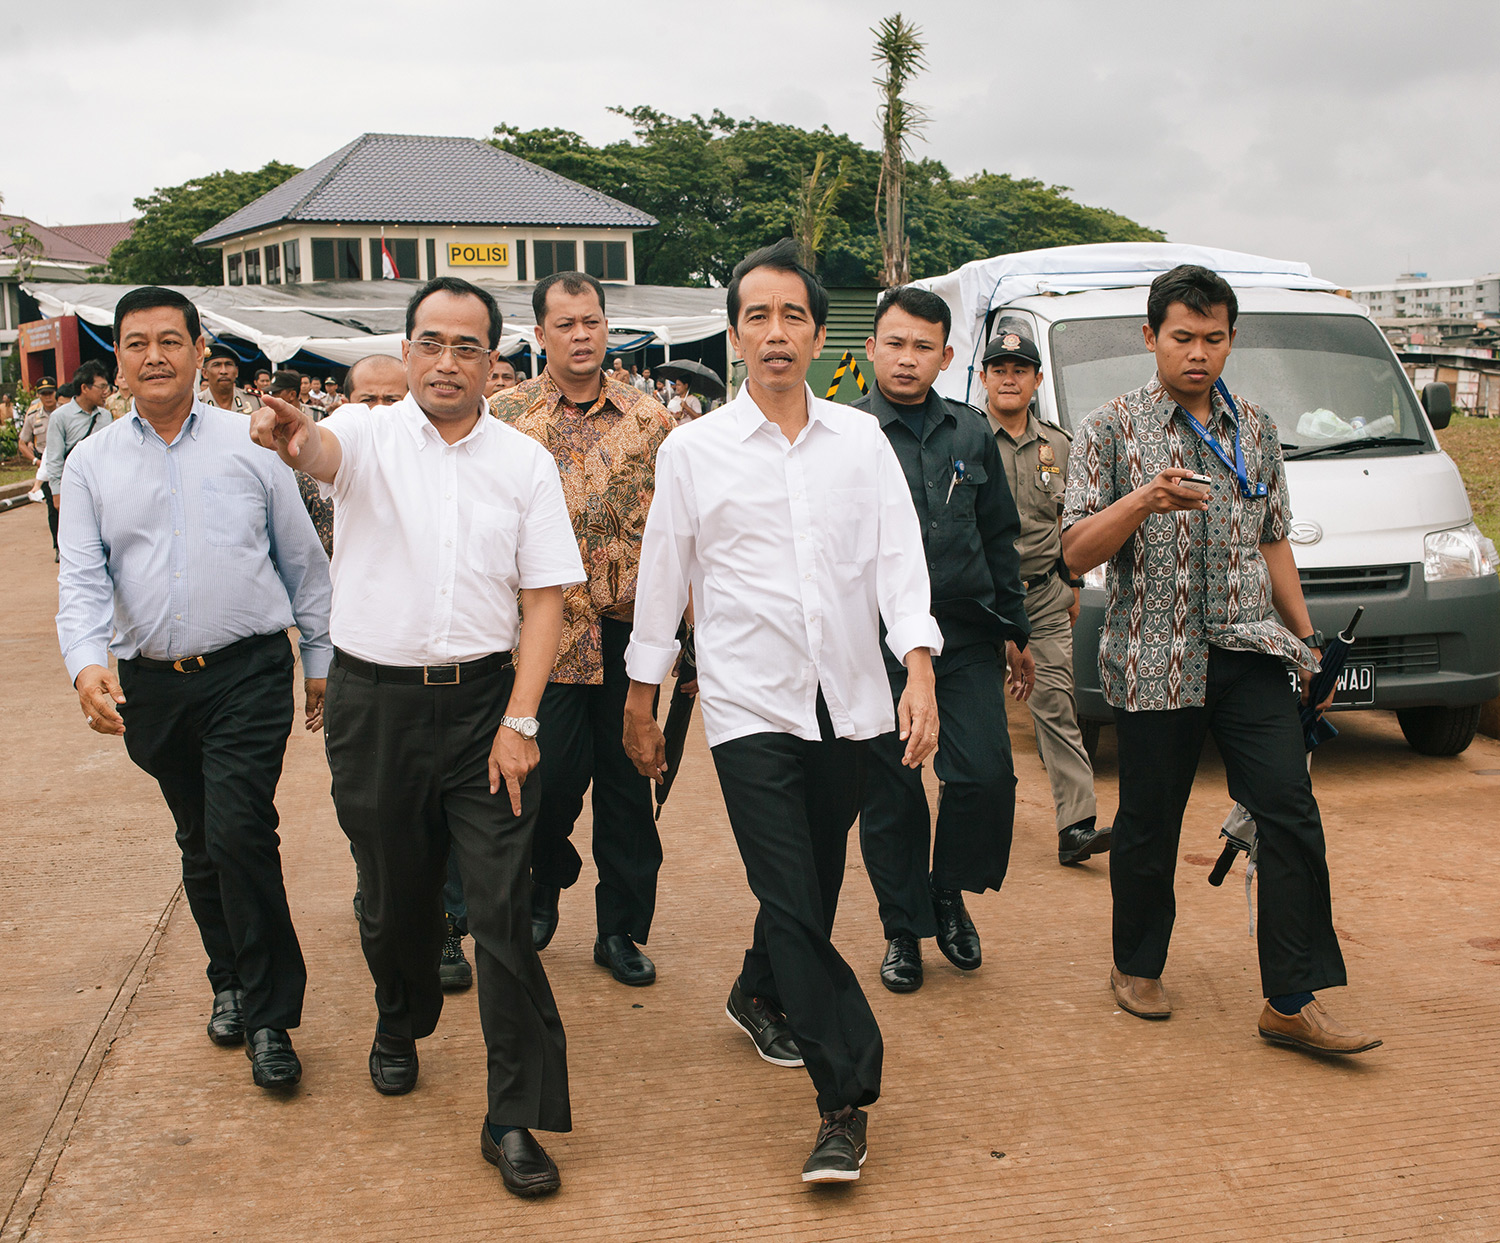 Joko Widodo during an inspection in North Jakarta.